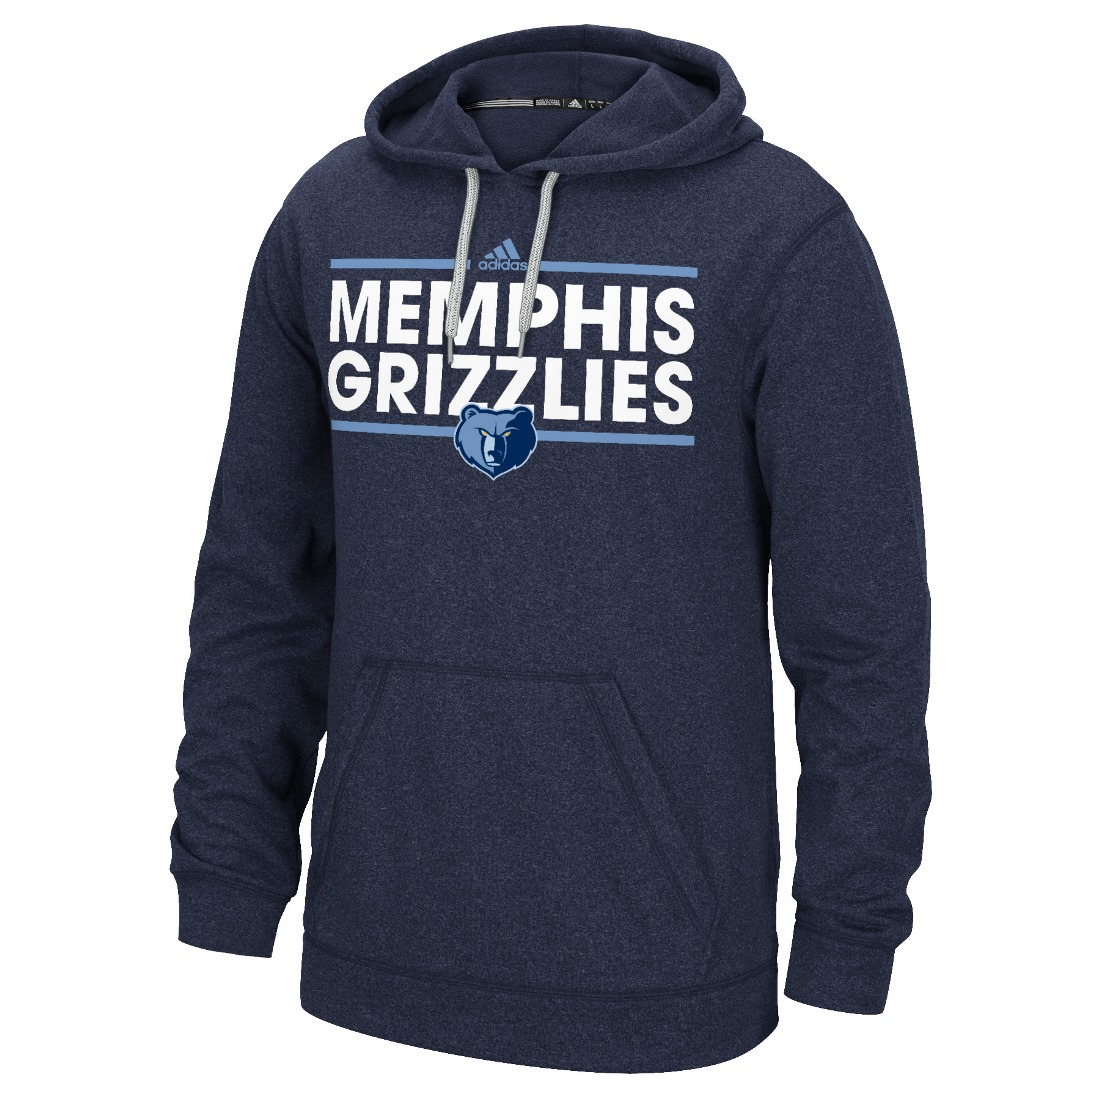 "Memphis Grizzlies Adidas NBA ""Dassler"" Men's Climawarm Hooded Sweatshirt"